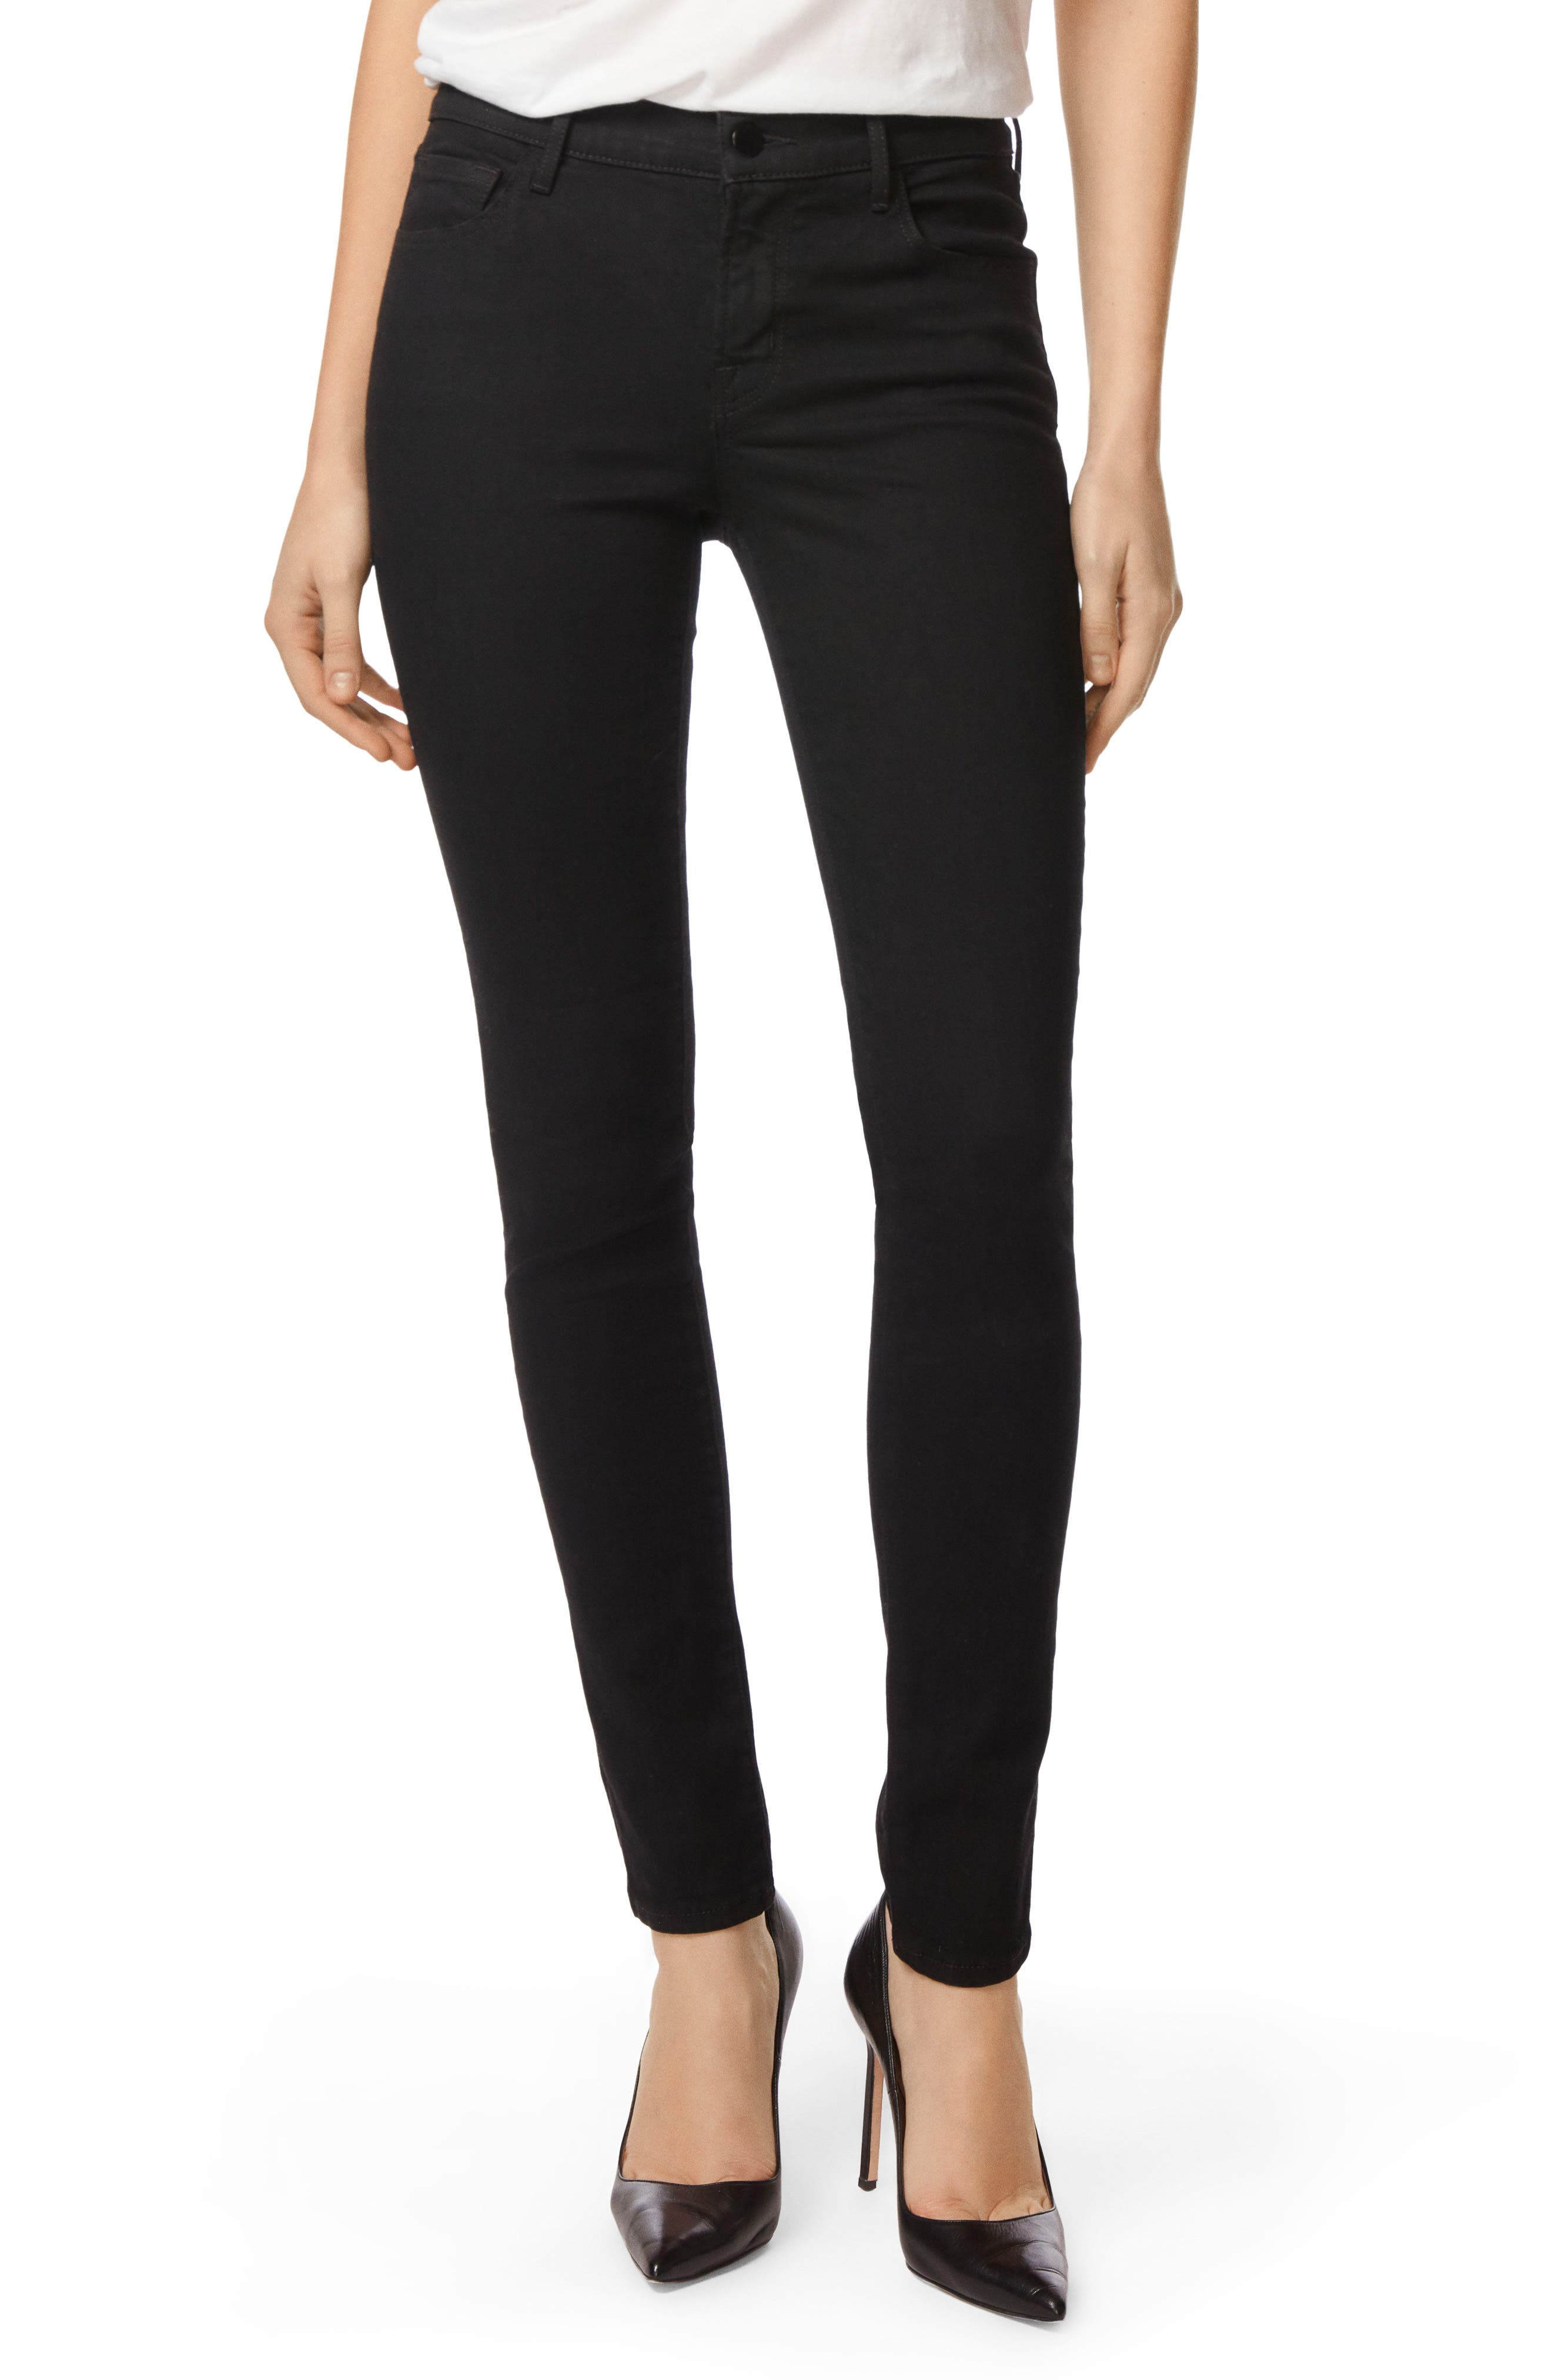 Main Image - J Brand '811' Mid Rise Skinny Jeans (Photo Ready Vanity)